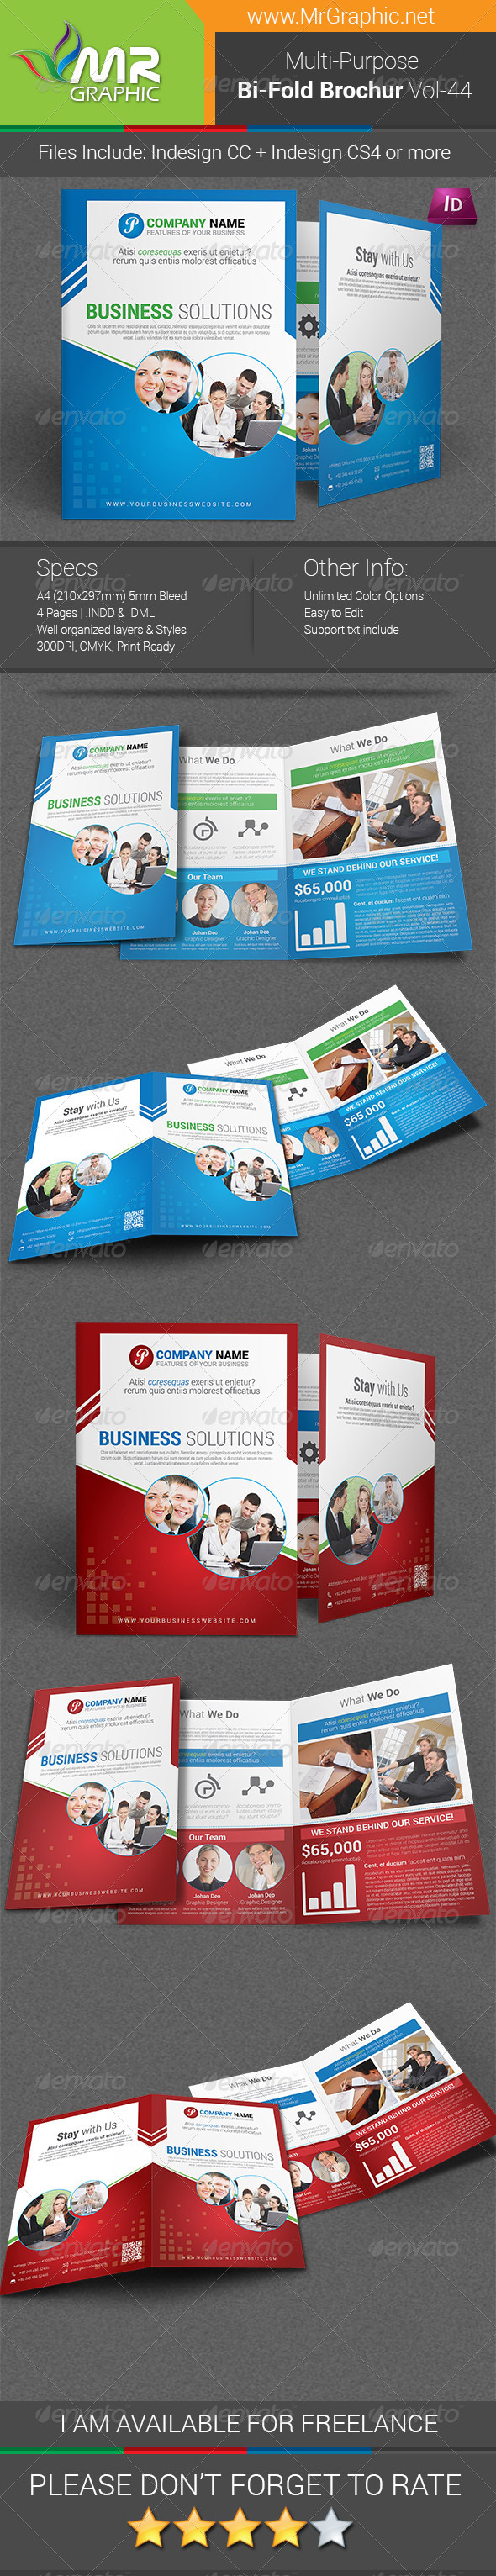 GraphicRiver Multipurpose Bi-fold Brochure Template Vol-44 6747768